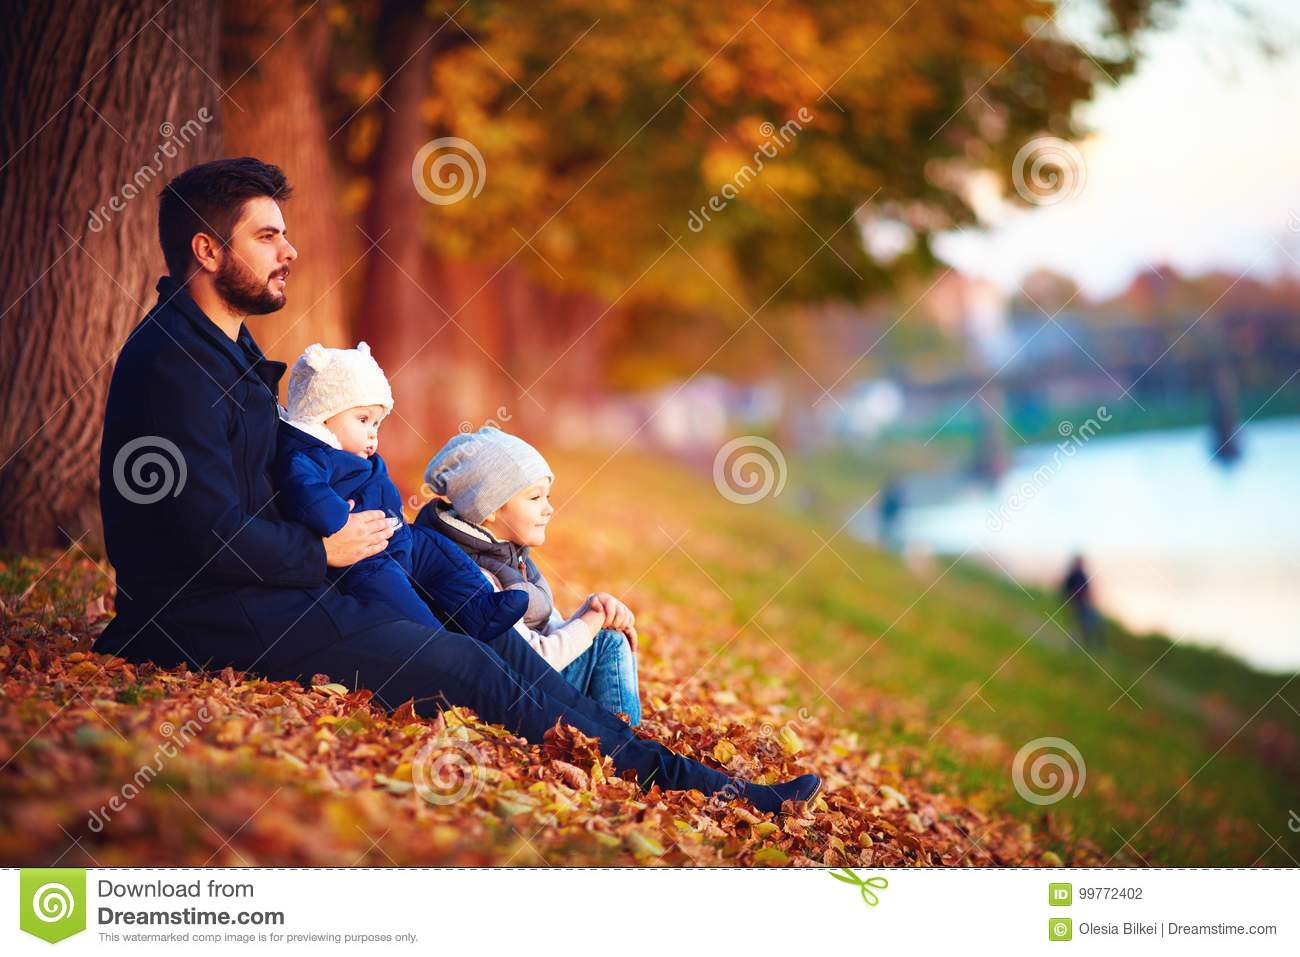 Portrait of father with kids enjoying autumn among fallen leaves